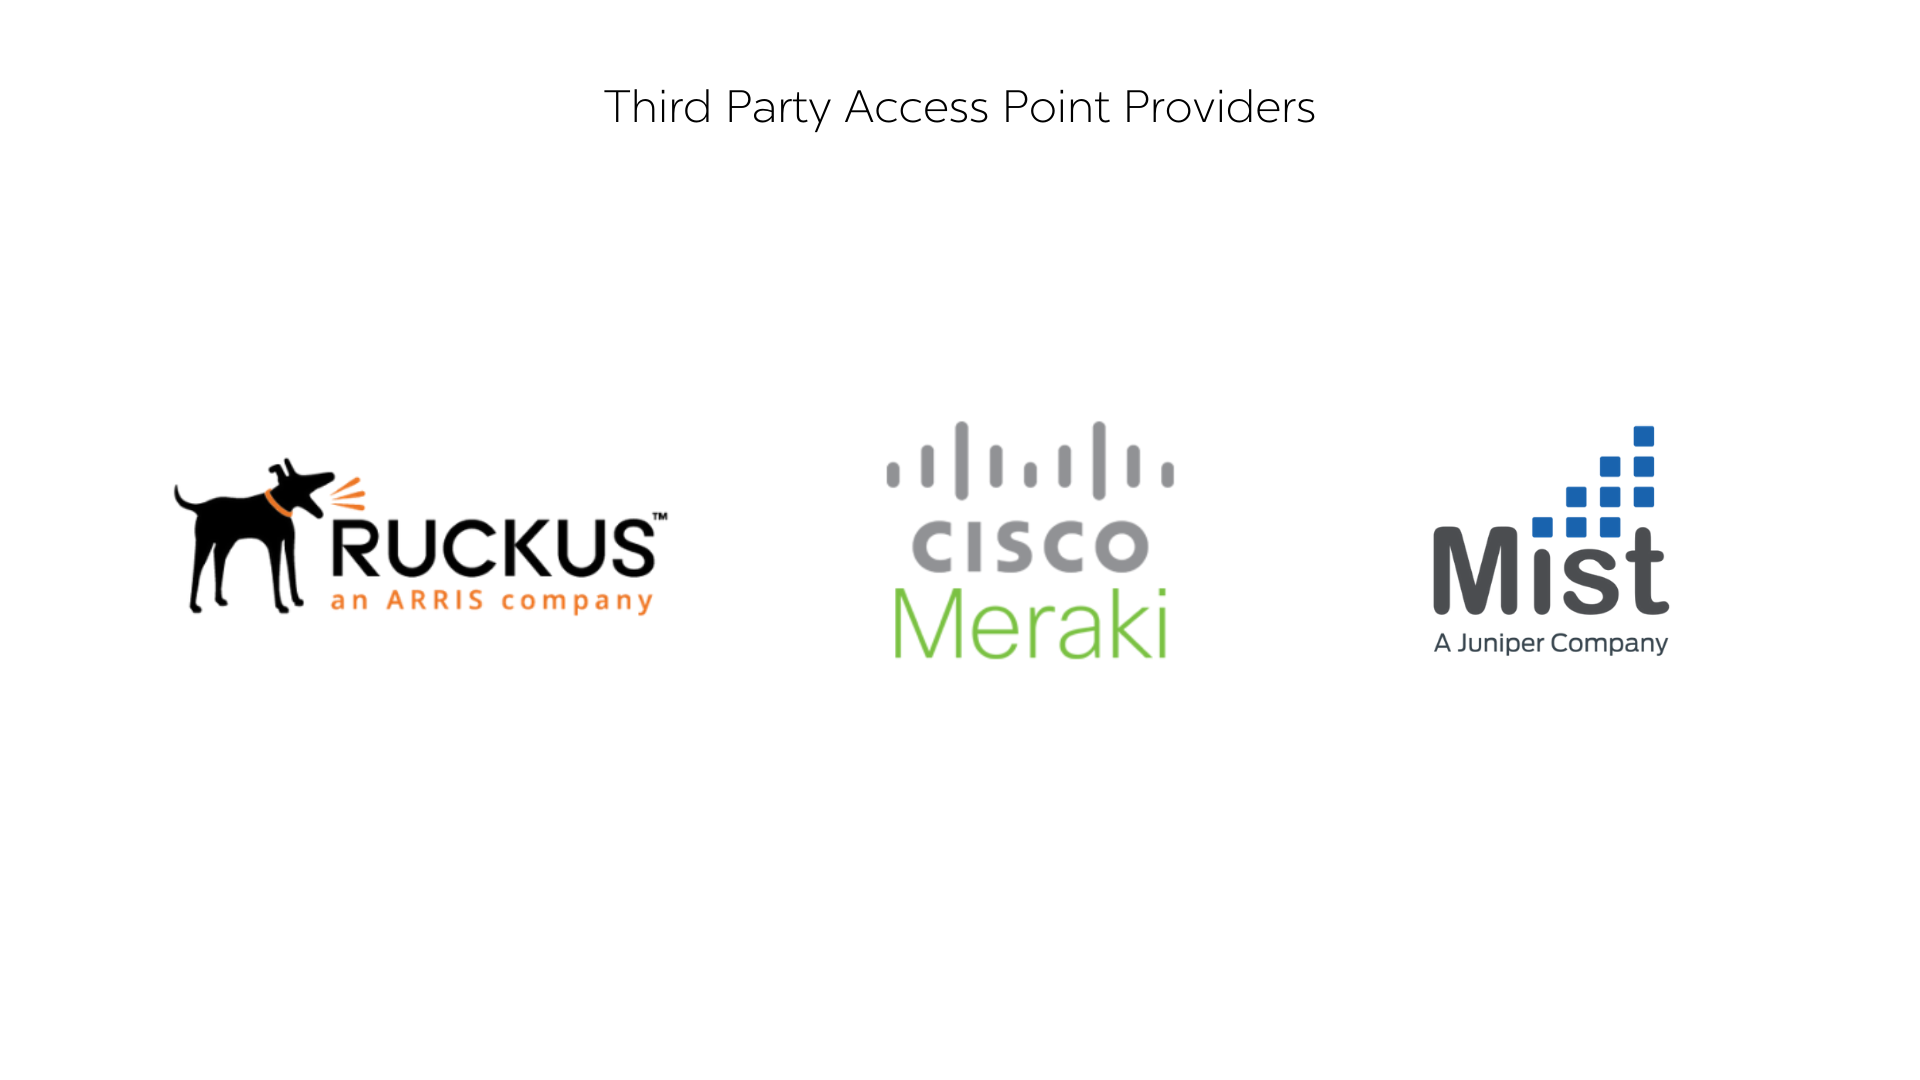 kontaktio-3rd-party-access-point-providers